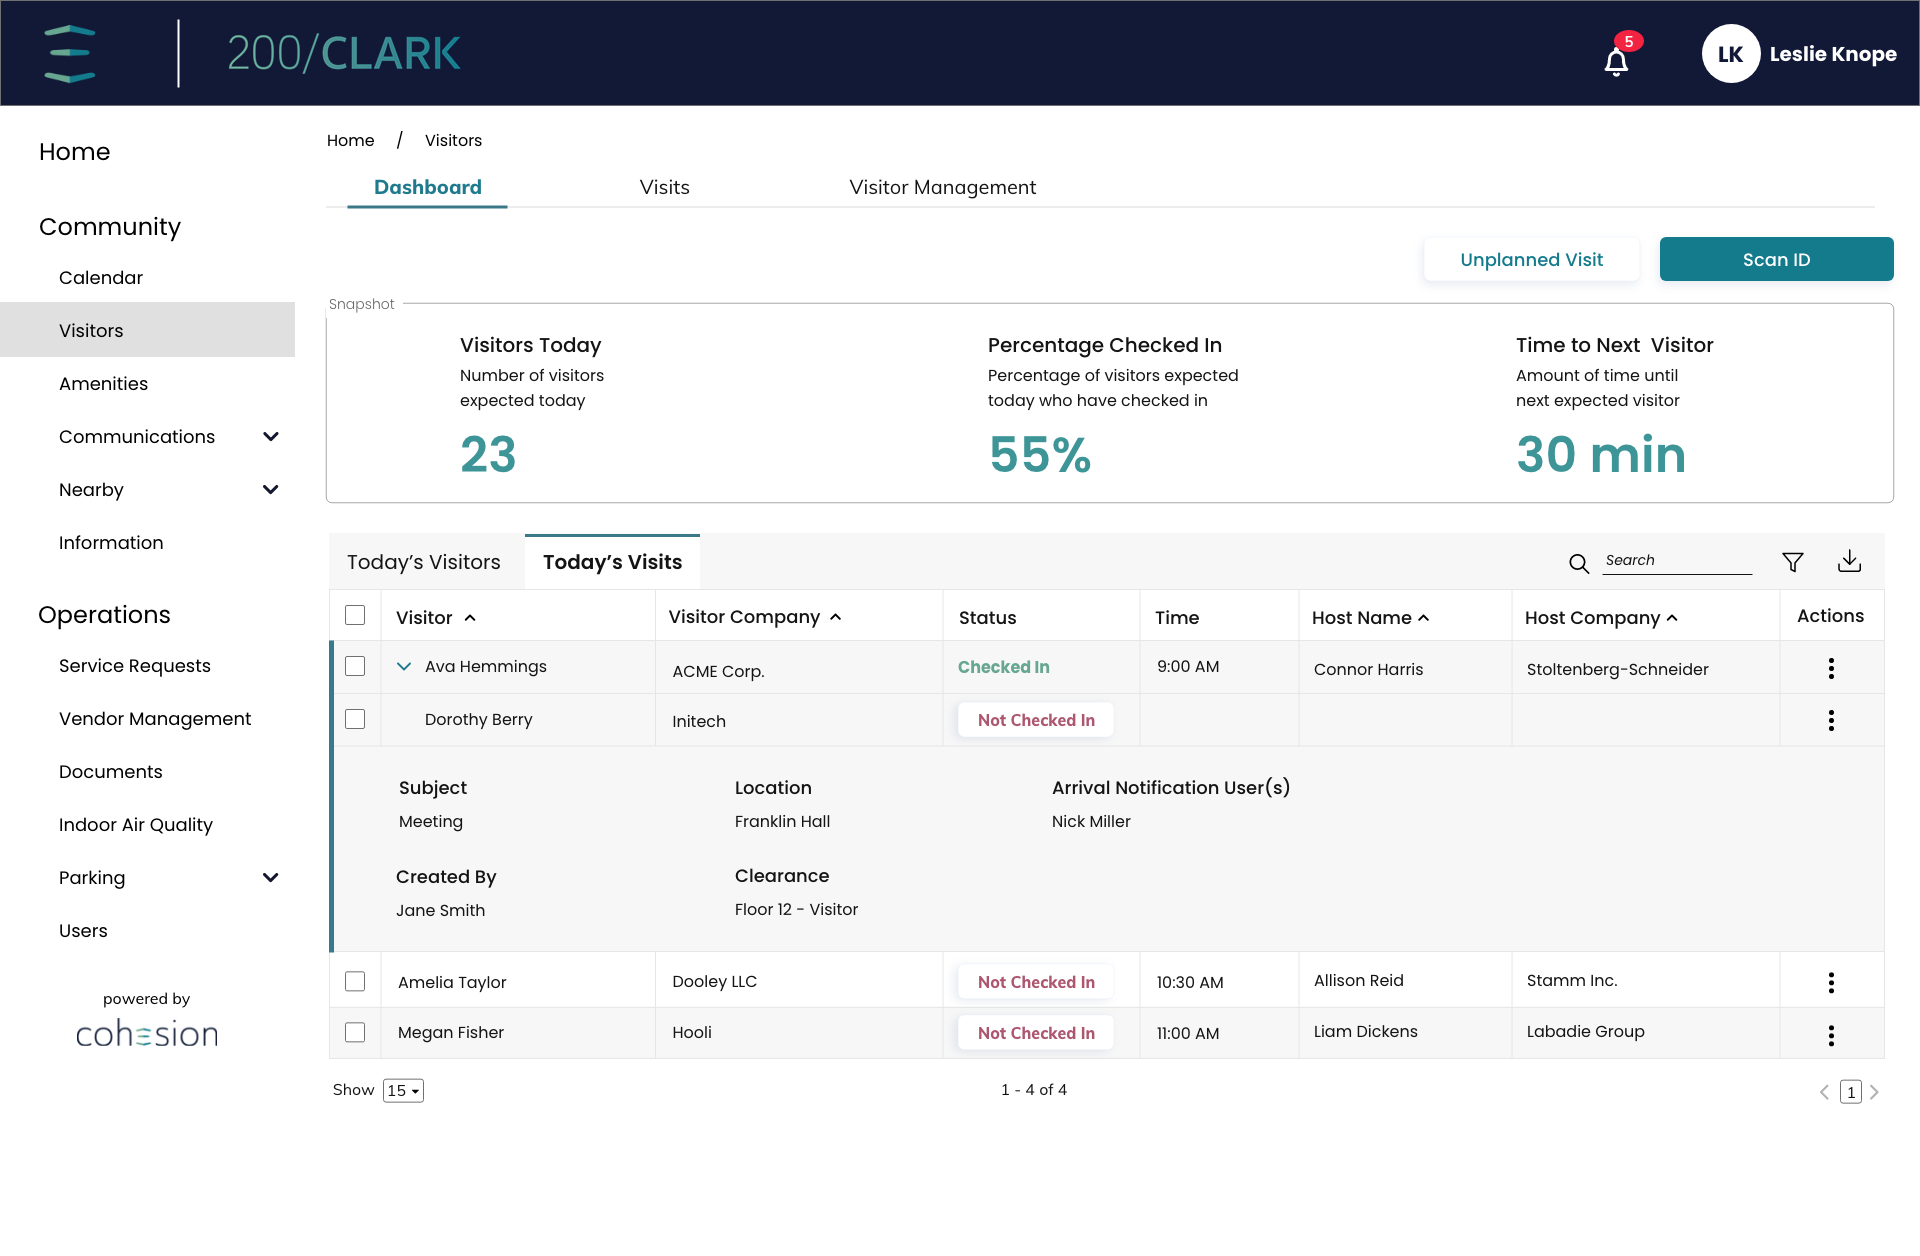 Tenant-Manager-Dashboard-Today's-Visitors-Expand